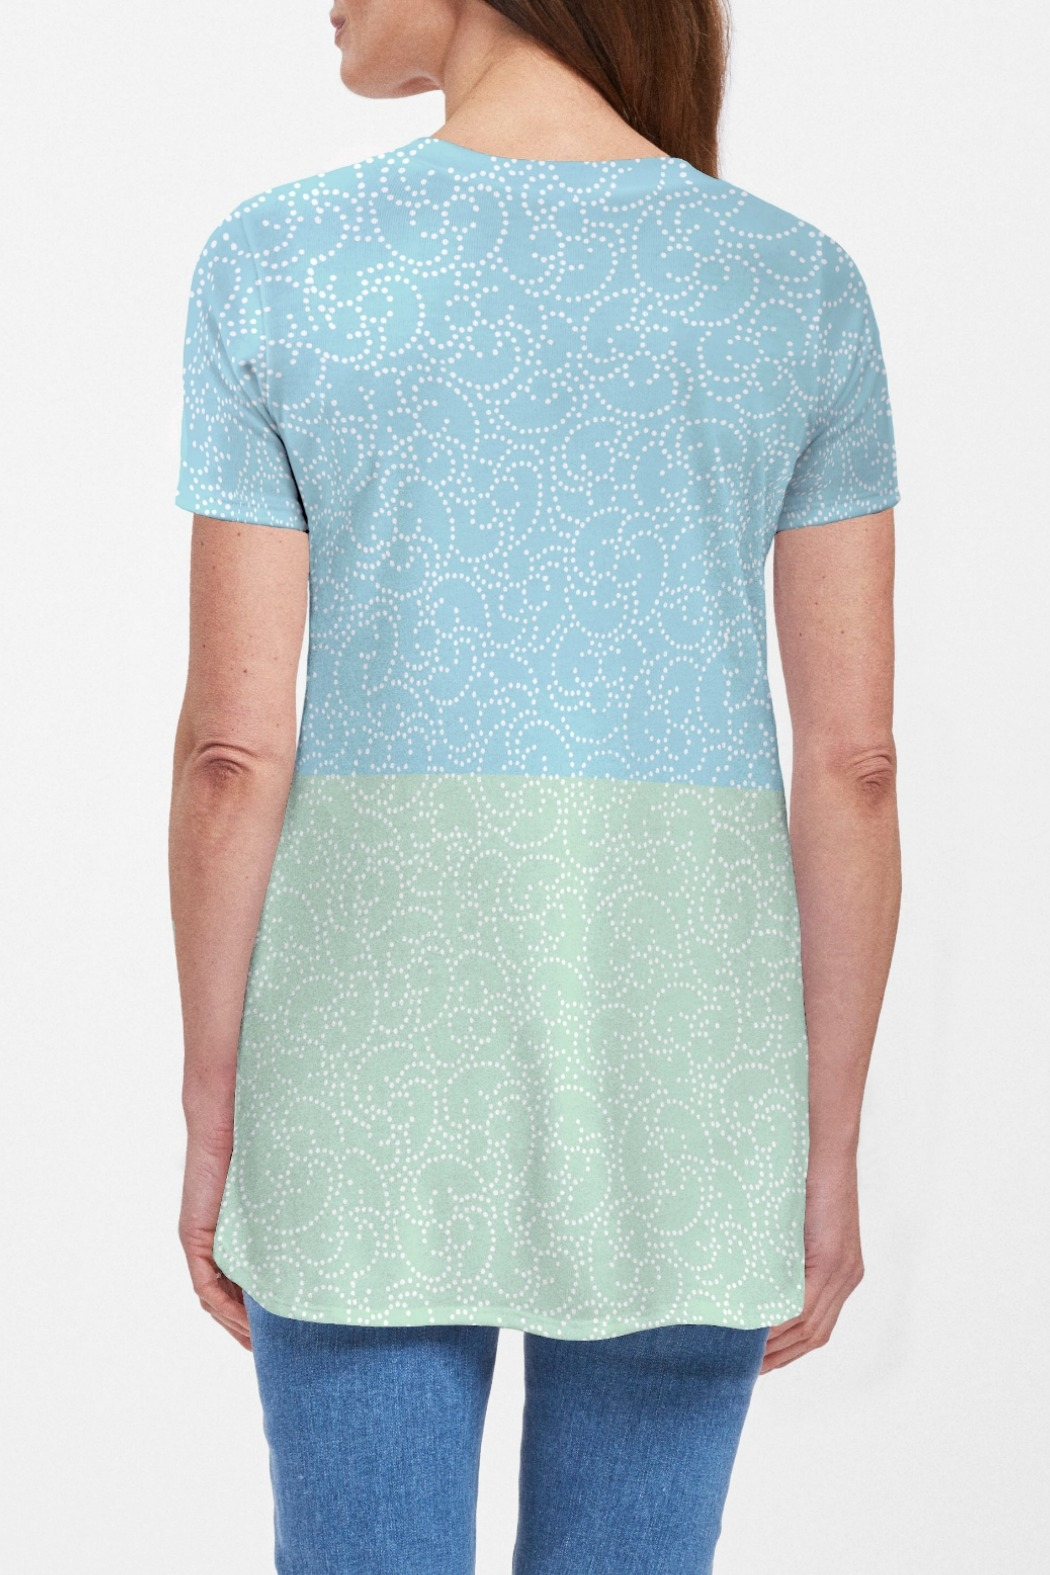 Whimsy Rose Stamped Floral Aqua S/S Butterknit Tunic - Front Full Image